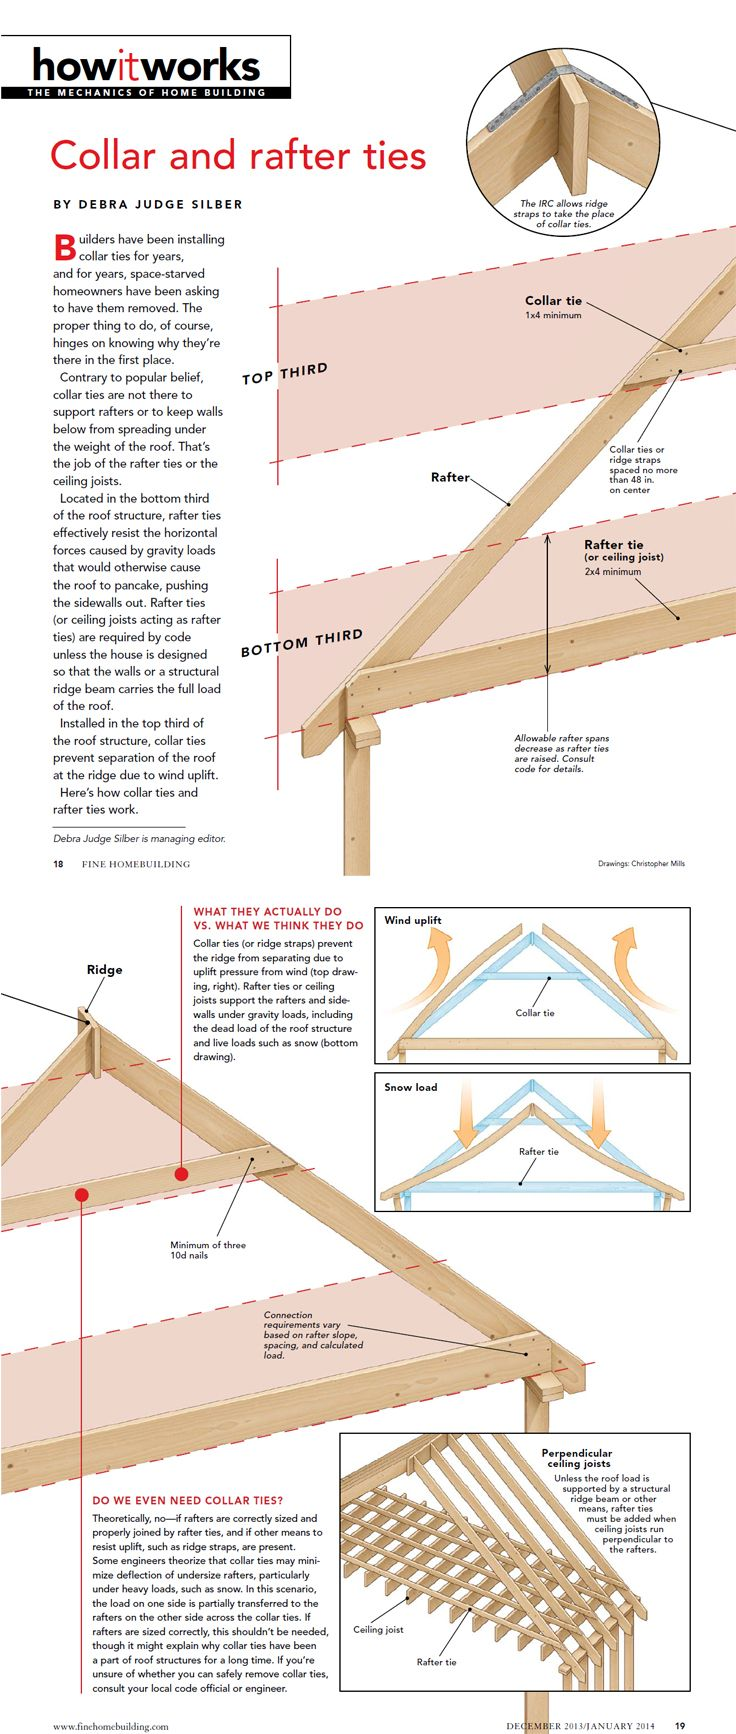 How It Works Collar And Rafter Ties Building A House Rafter Roof Framing